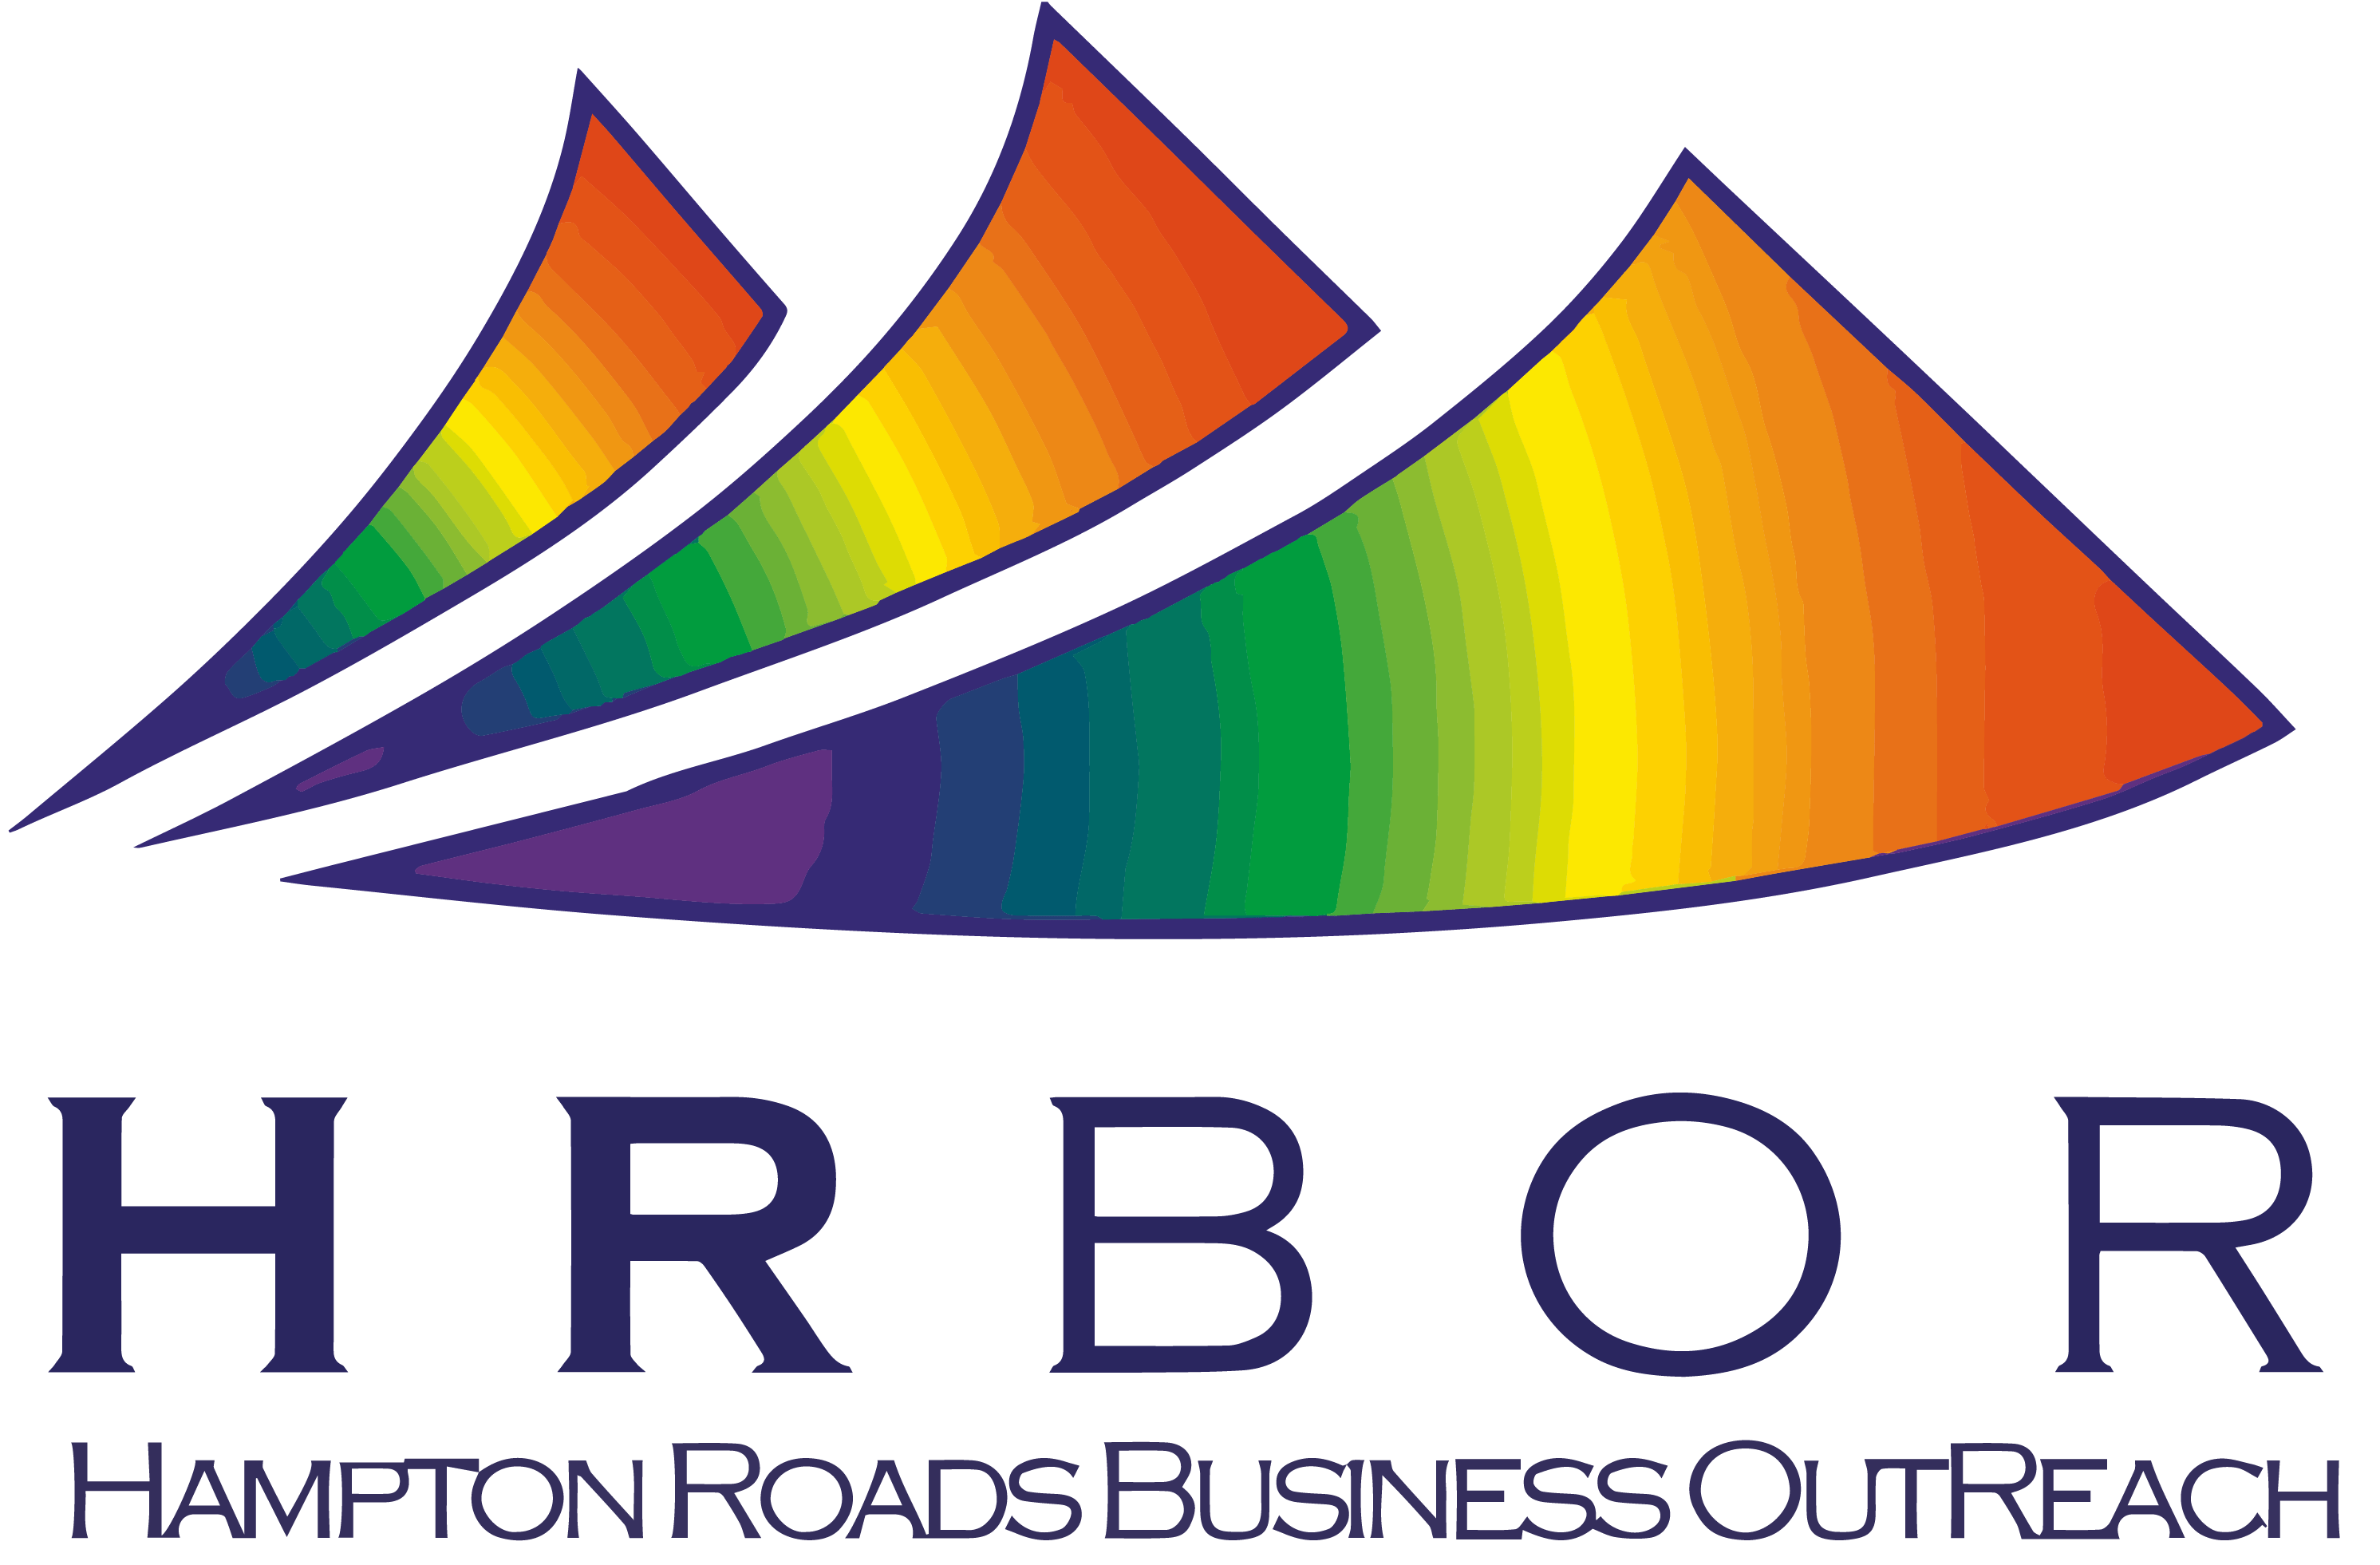 Hampton Roads Business Outreach